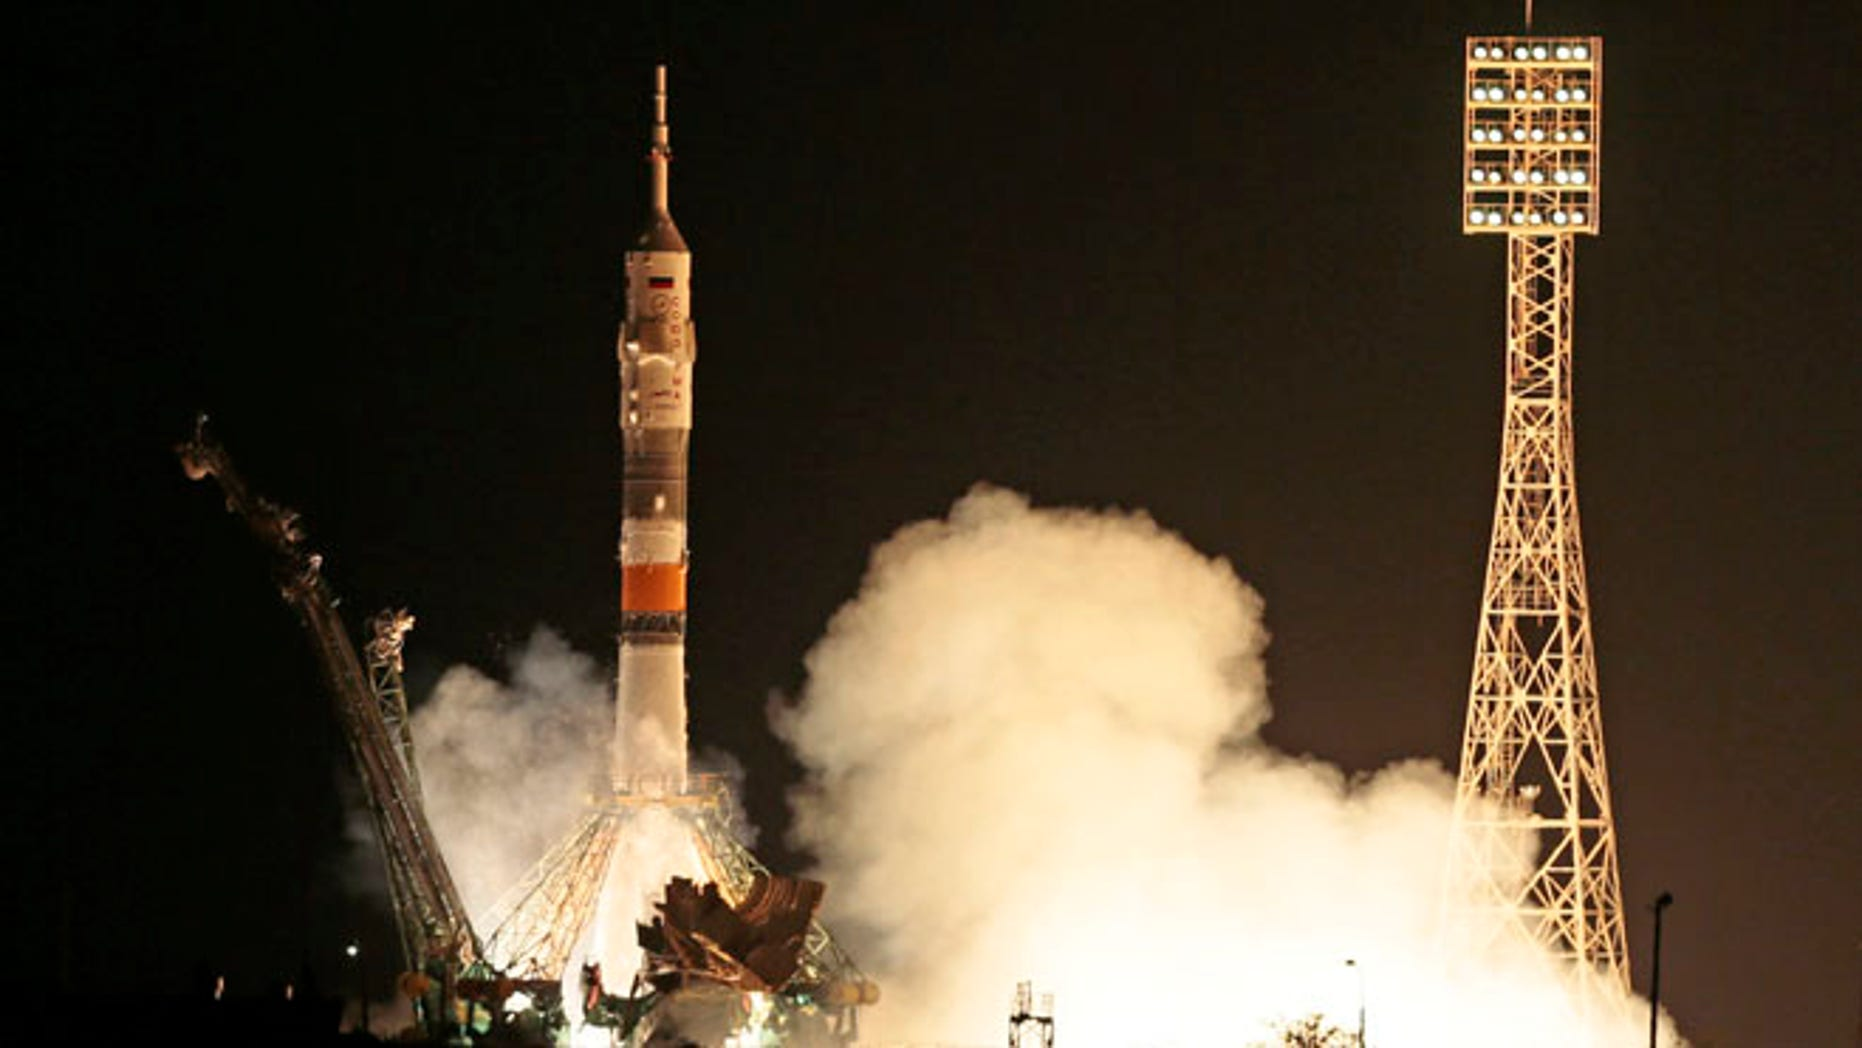 May 28, 2013: The Soyuz-FG rocket booster with Soyuz TMA-09M space ship carrying a new crew to the International Space Station, ISS, blasts off at the Russian leased Baikonur cosmodrome, Kazakhstan.